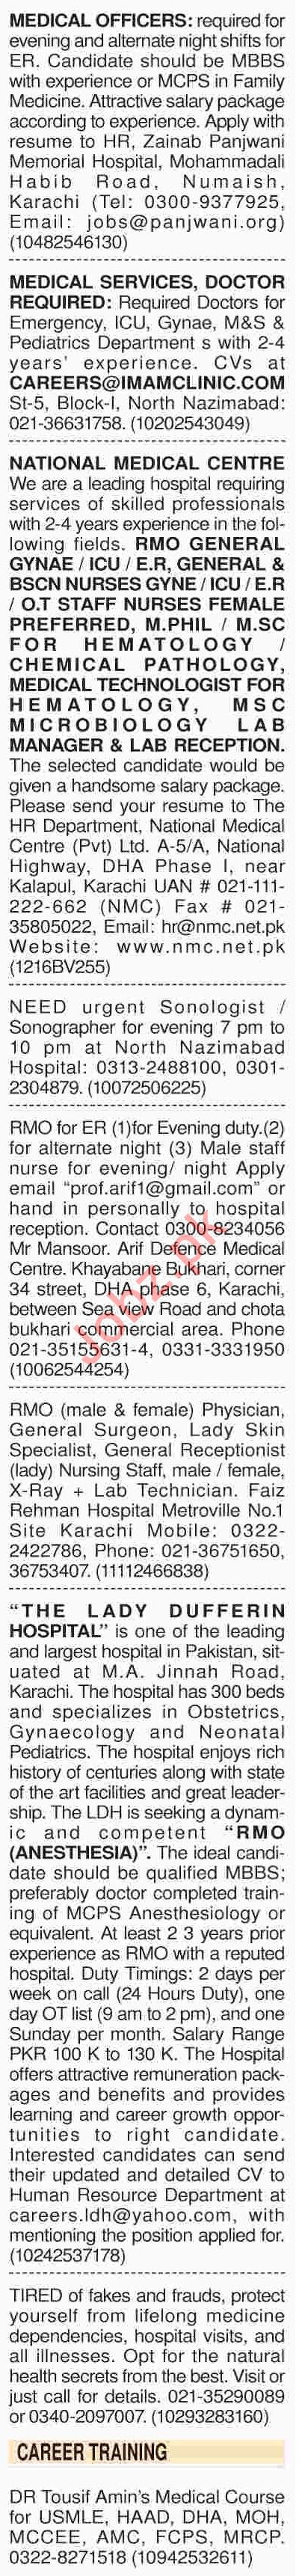 Dawn Sunday Classified Ads 21th April 2019 Medical Staff